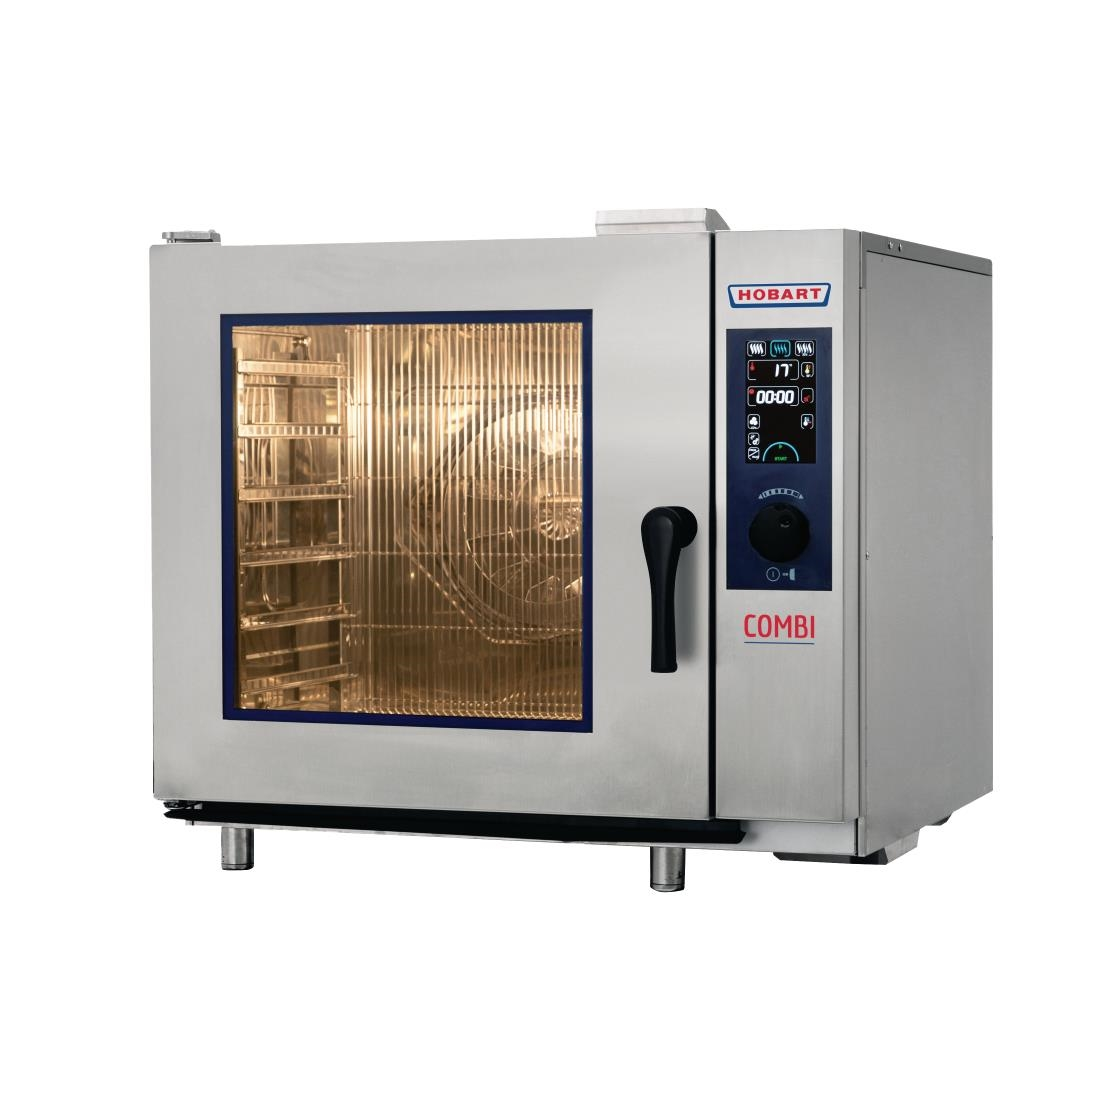 Hobart COMBI 6 x 1/1 GN Tray Electric Combi Oven HEJ061E